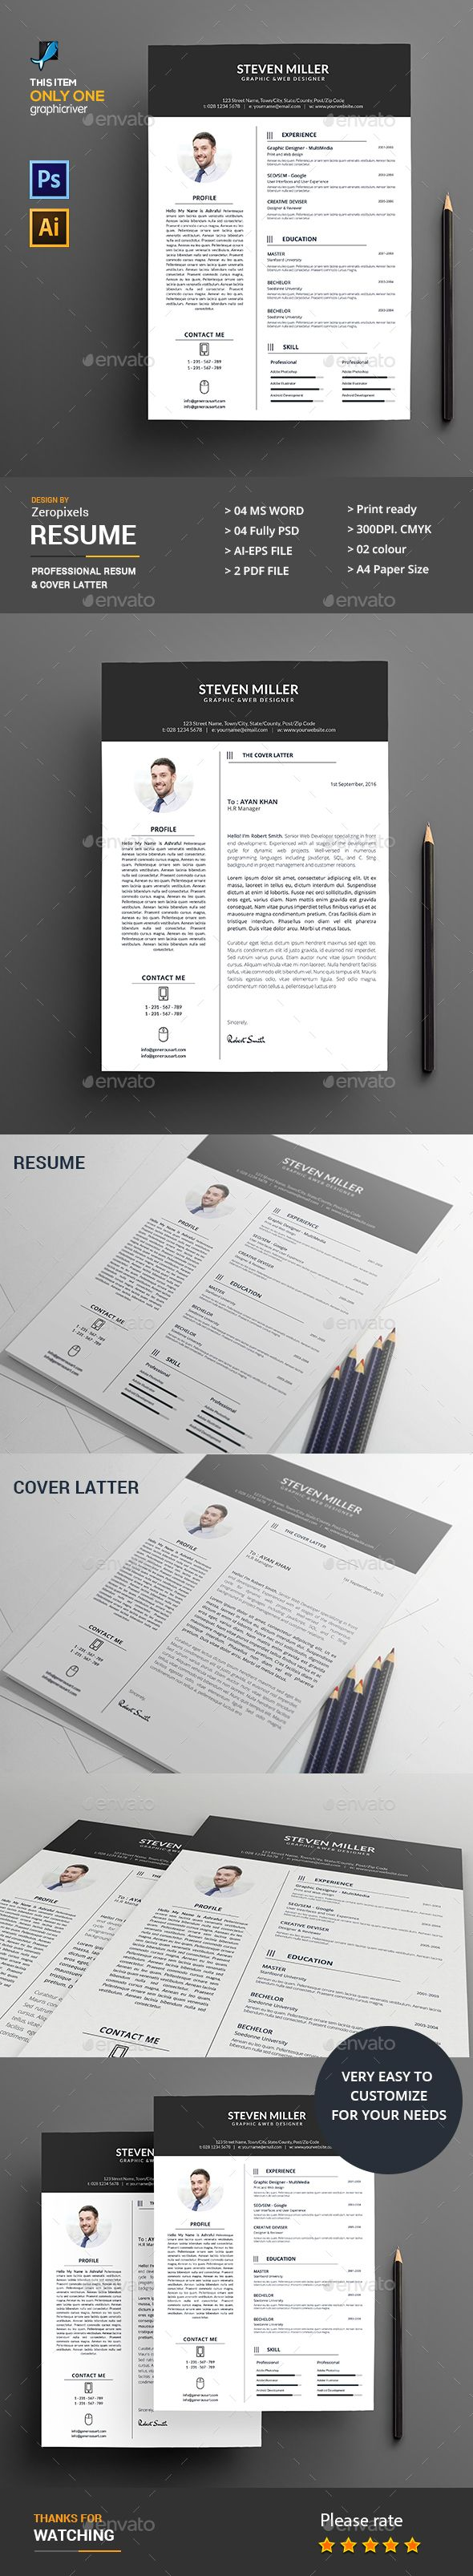 Download Free Resumes Adorable 30 Best Cv Tempelate Images On Pinterest  Resume Templates .